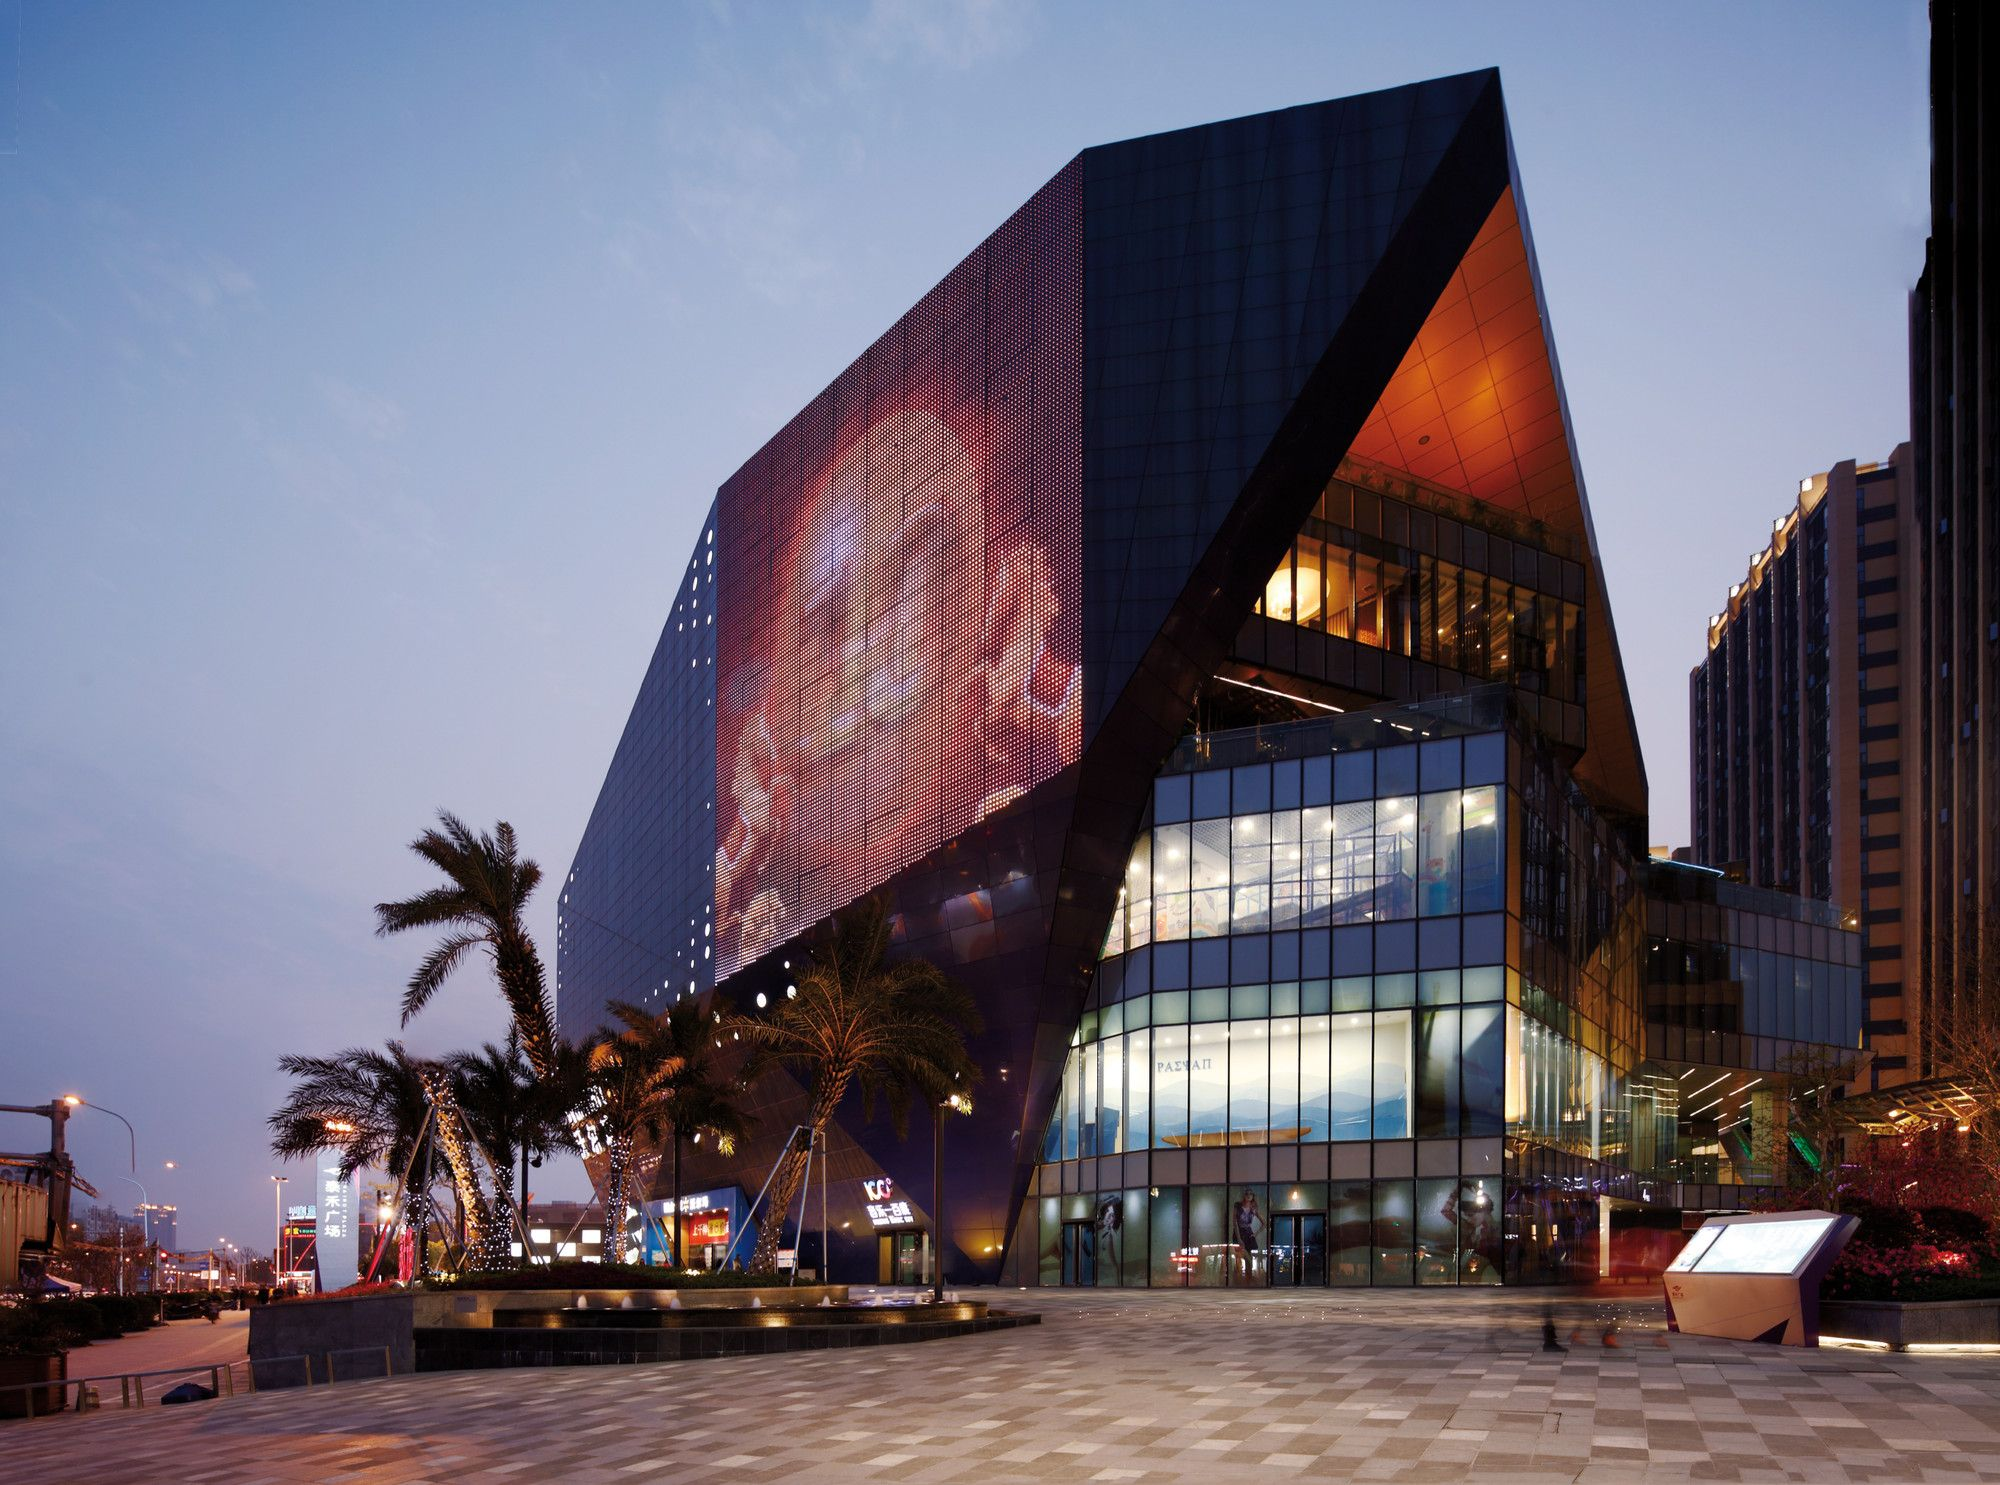 Gallery Of Fuzhou Wusibei Thaihot Plaza Spark Architects  20